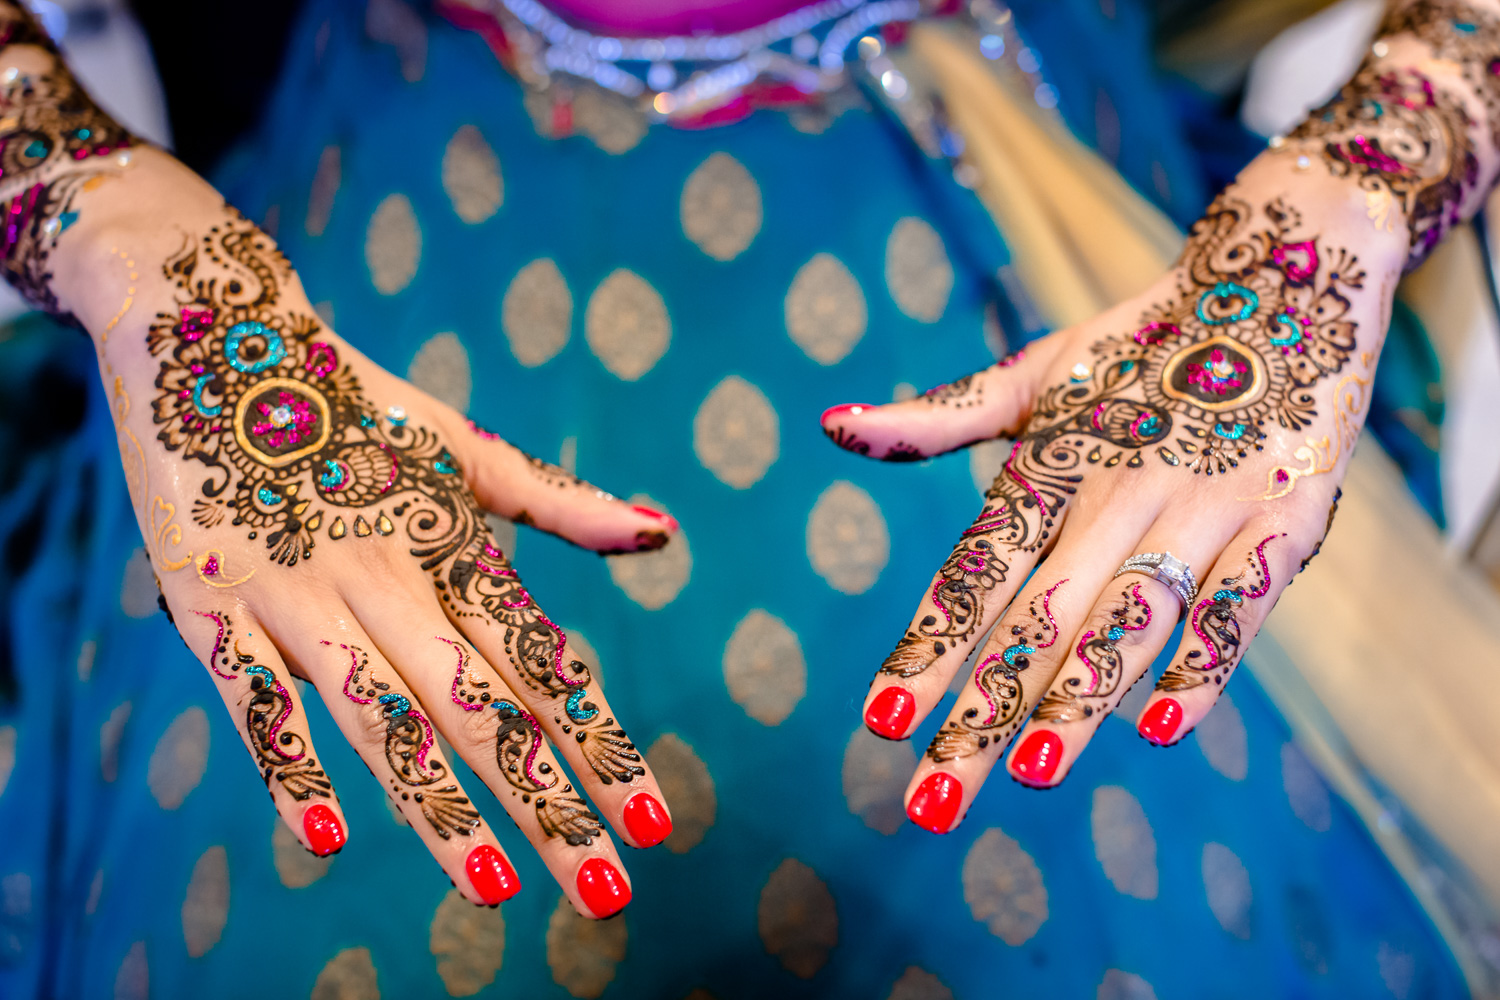 hedsor-weddings-krishna-105.jpg